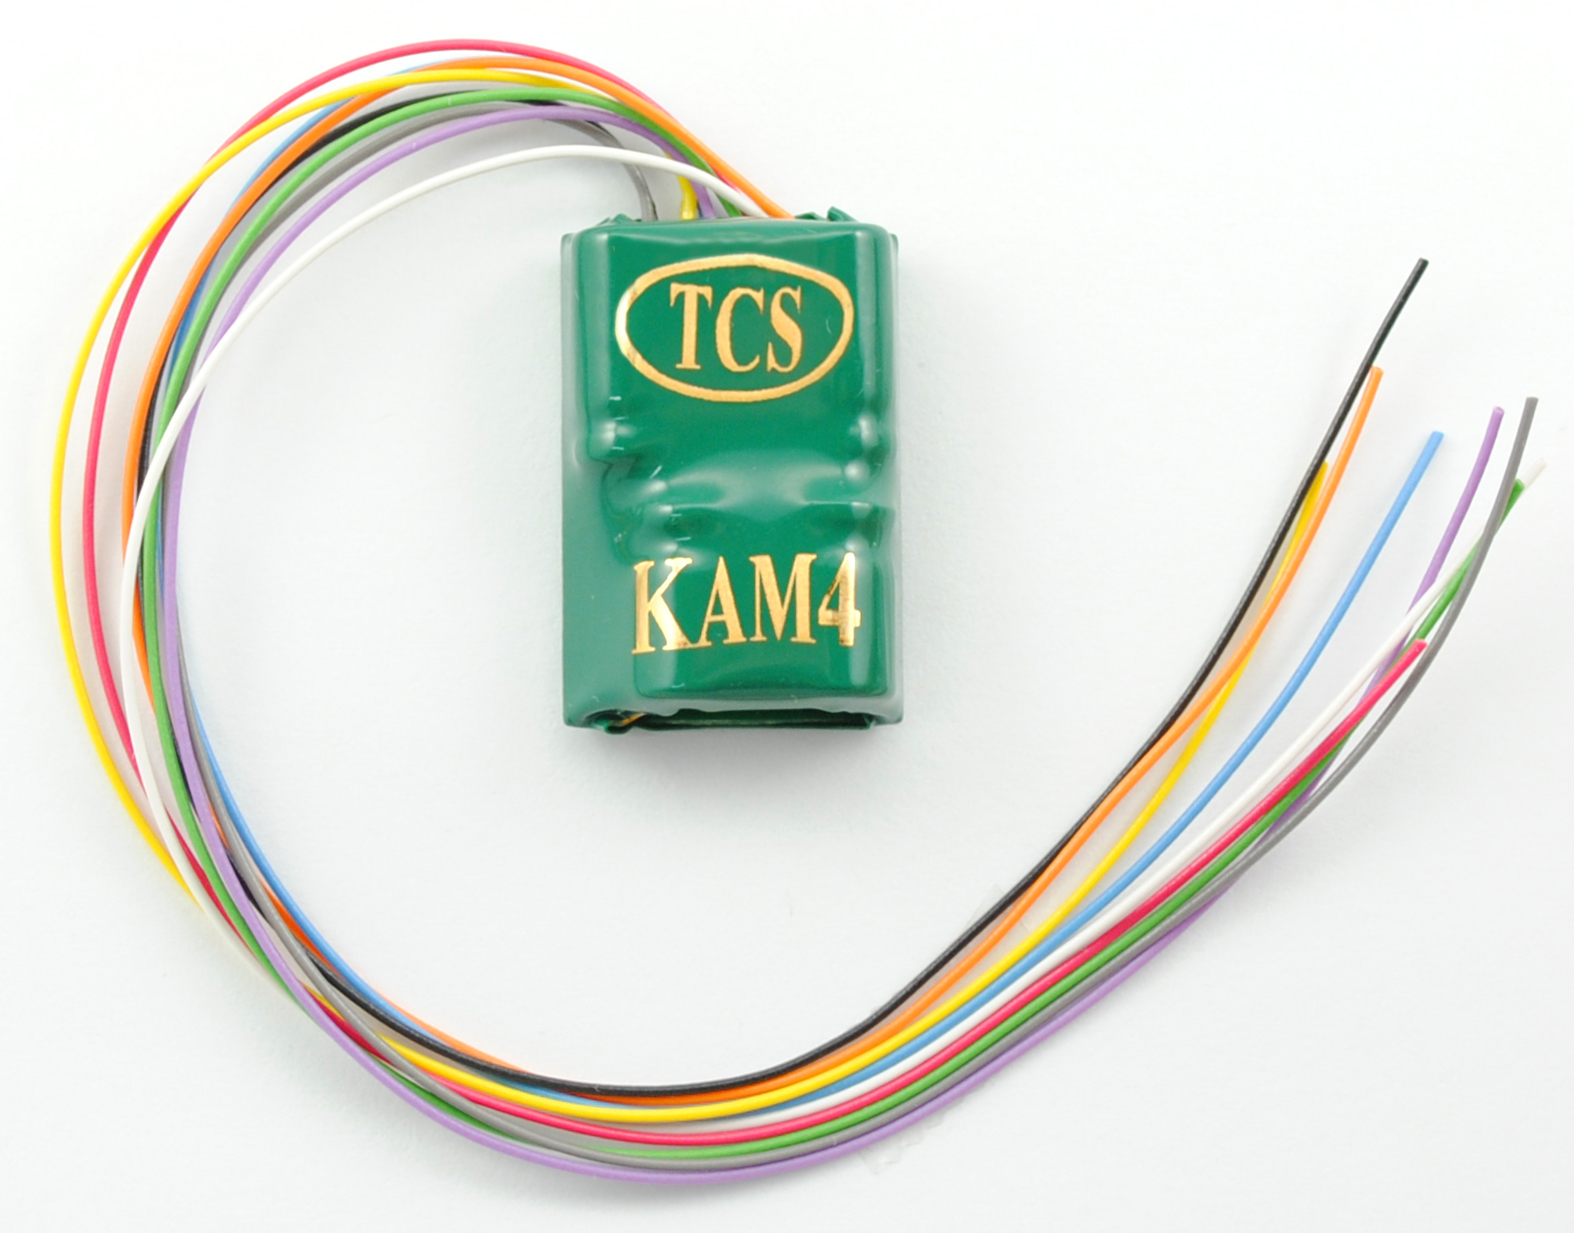 Train Control Systems 1486 KAM4P-SH 1  HARNESS This is Train Control Systems 1486 KAM4P-SH 1 HARNESS. KAM4P-SH 4-function wired DCC decoder with built-in Keep-Alive. This full featured 4 function hardwire decoder combines the relative small size of a M4 decoder with Keep Alive™ on board. Keep Alive™ will keep locomotive operating for 3-6 seconds without power (dirty track, bad connections, dead switch frogs etc.). This decoder can be bought with NMRA 8 pin plug and play convience in three lengths of harnessing (KAM4P-SH, KAM4P-MH, KAM4P-LH). Decoder includes our famous auto adjusting BEMF for outstanding slow speed performance. Dimensions: 0.945 x 0.66 x 0.33 (33.4mm x 24mm x 8.38 mm)Condition: Factory New (C-9All original; unused; factory rubs and evidence of handling, shipping and factory test run.Standards for all toy train related accessory items apply to the visual appearance of the item and do not consider the operating functionality of the equipment.Condition and Grading Standards are subjective, at best, and are intended to act as a guide. )Operational Status: FunctionalThis item is brand new from the factory.Original Box: Yes (P-9May have store stamps and price tags. Has inner liners.)Manufacturer: Train Control SystemsModel Number: 1486MSRP: $66.95Scale/Era: HO ModernModel Type: AccessoriesAvailability: Ships in 2 Business Days!The Trainz SKU for this item is P11688244. Track: 11688244 - No Location Assigned - 001 - TrainzAuctionGroup00UNK - TDIDUNK